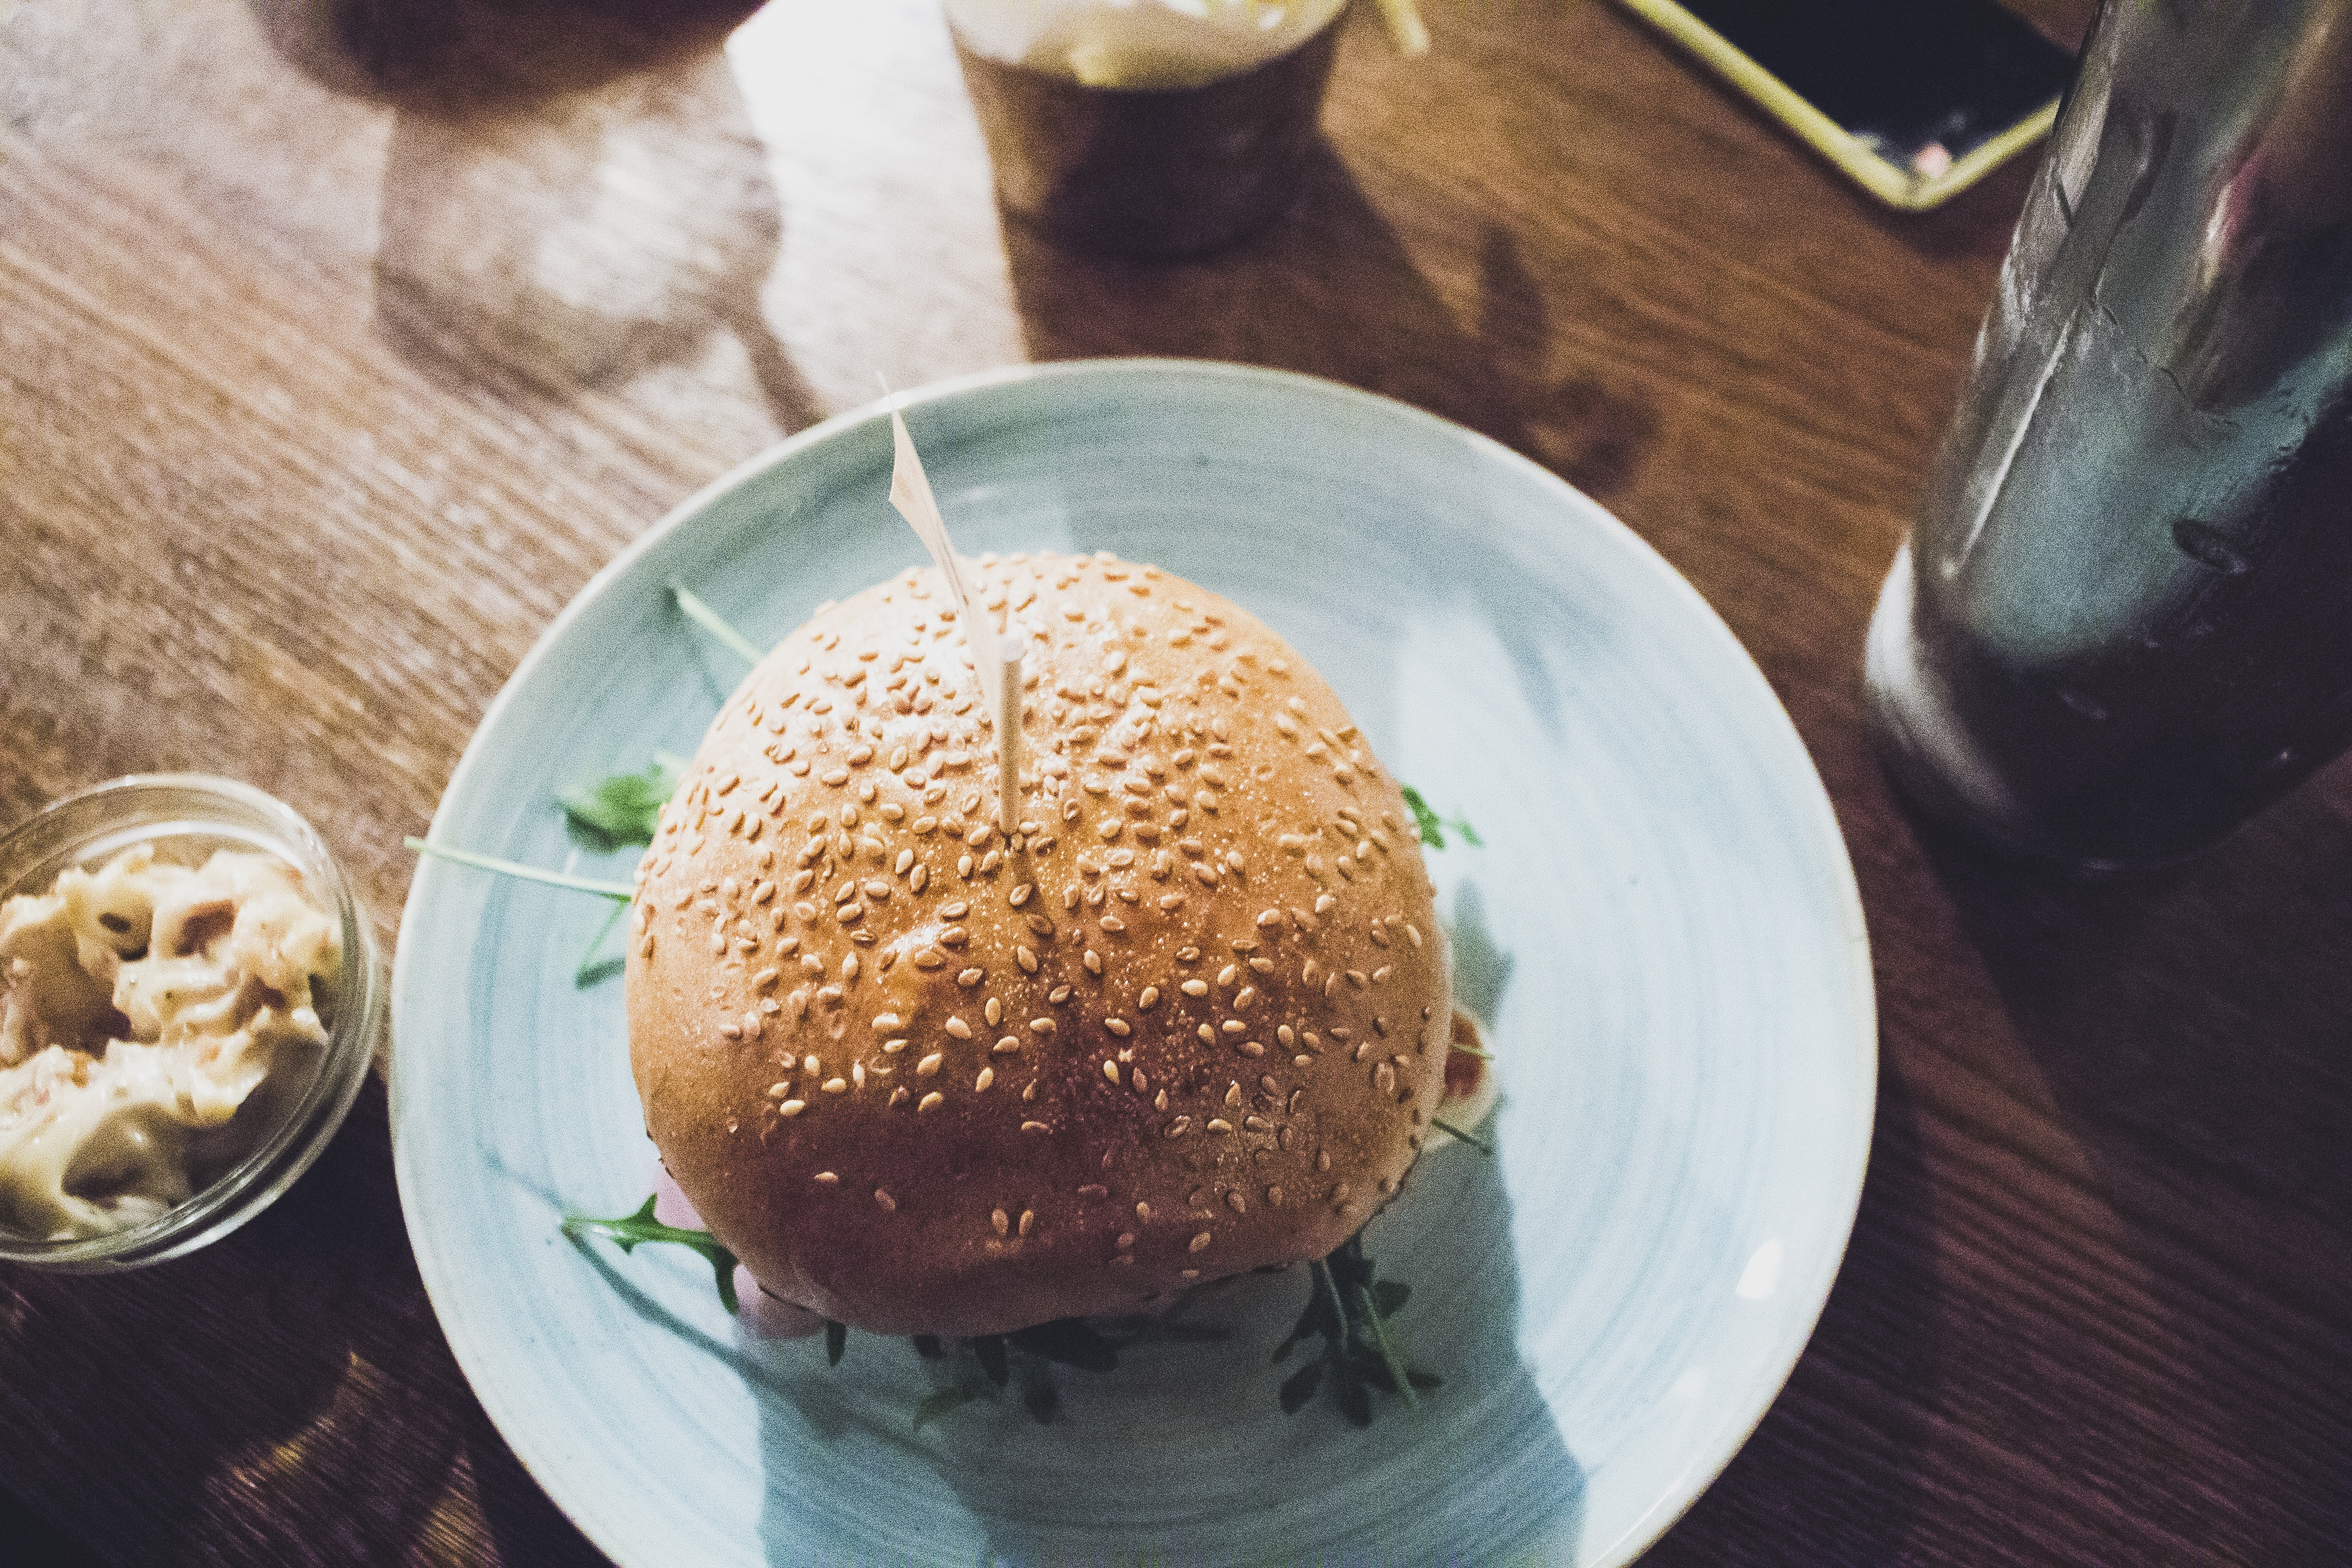 Burger with a sesame bun on a light blue plate